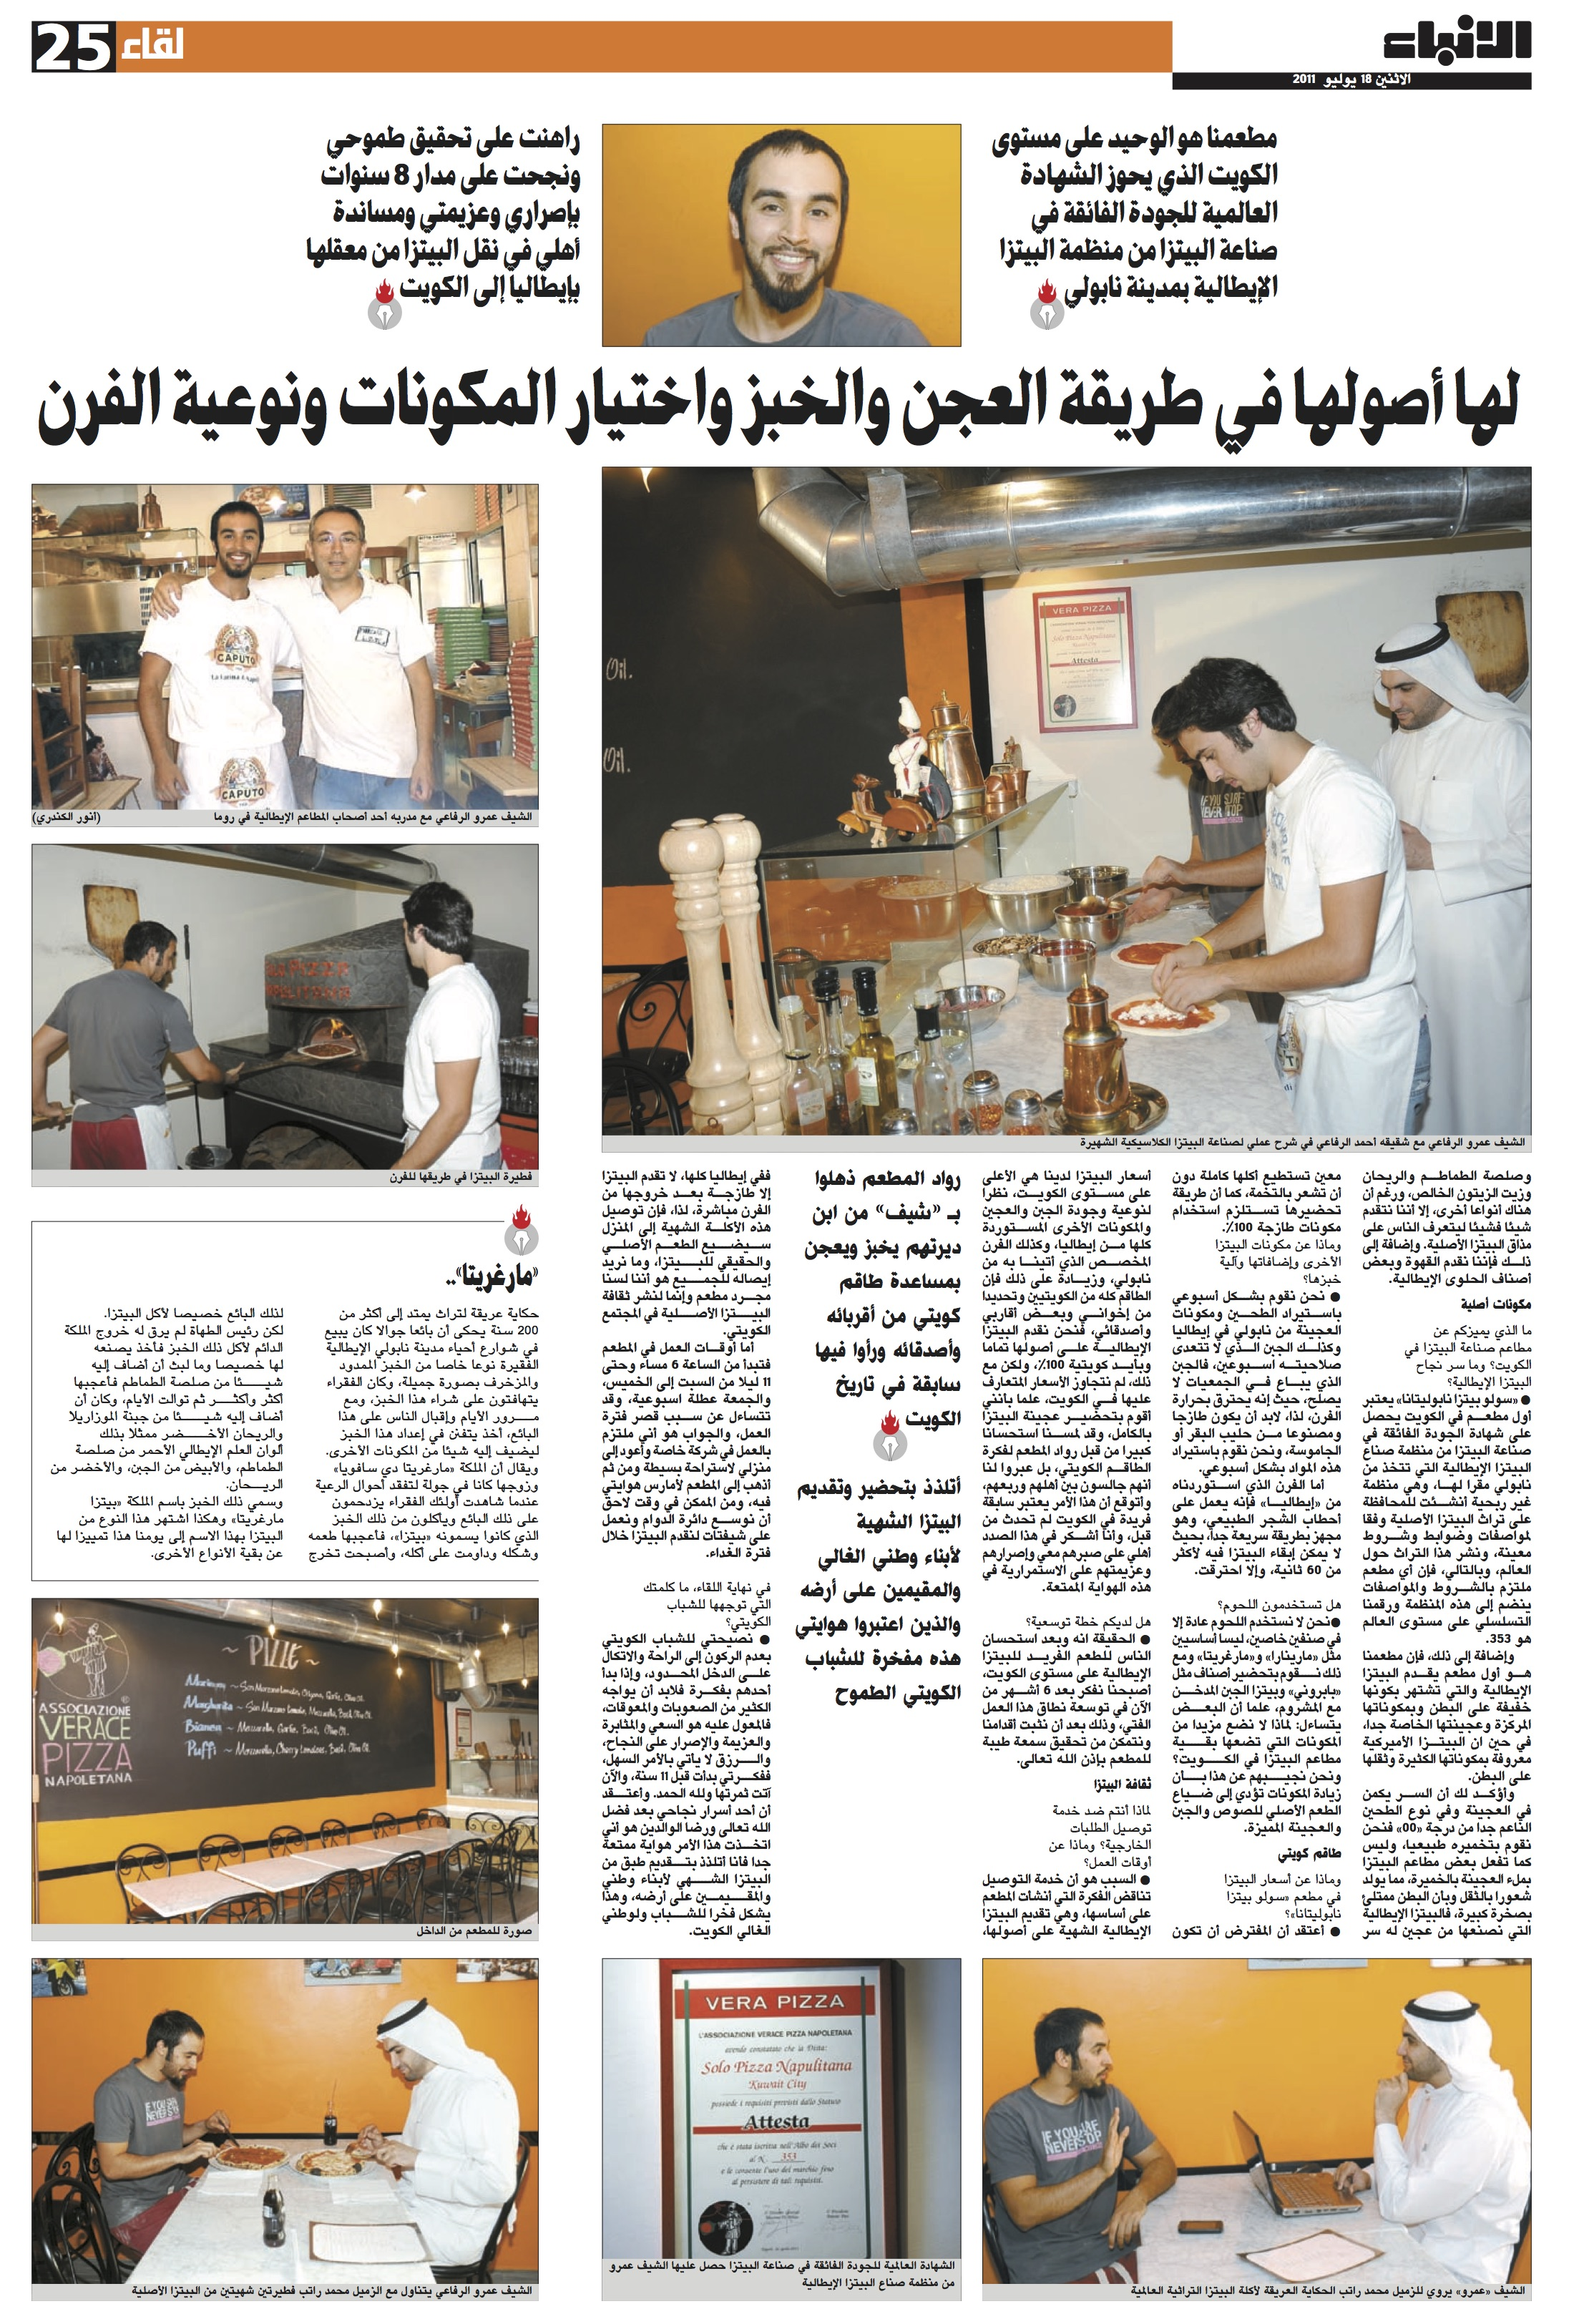 Al-Anbaa Newspaper (18 Jul 2011)